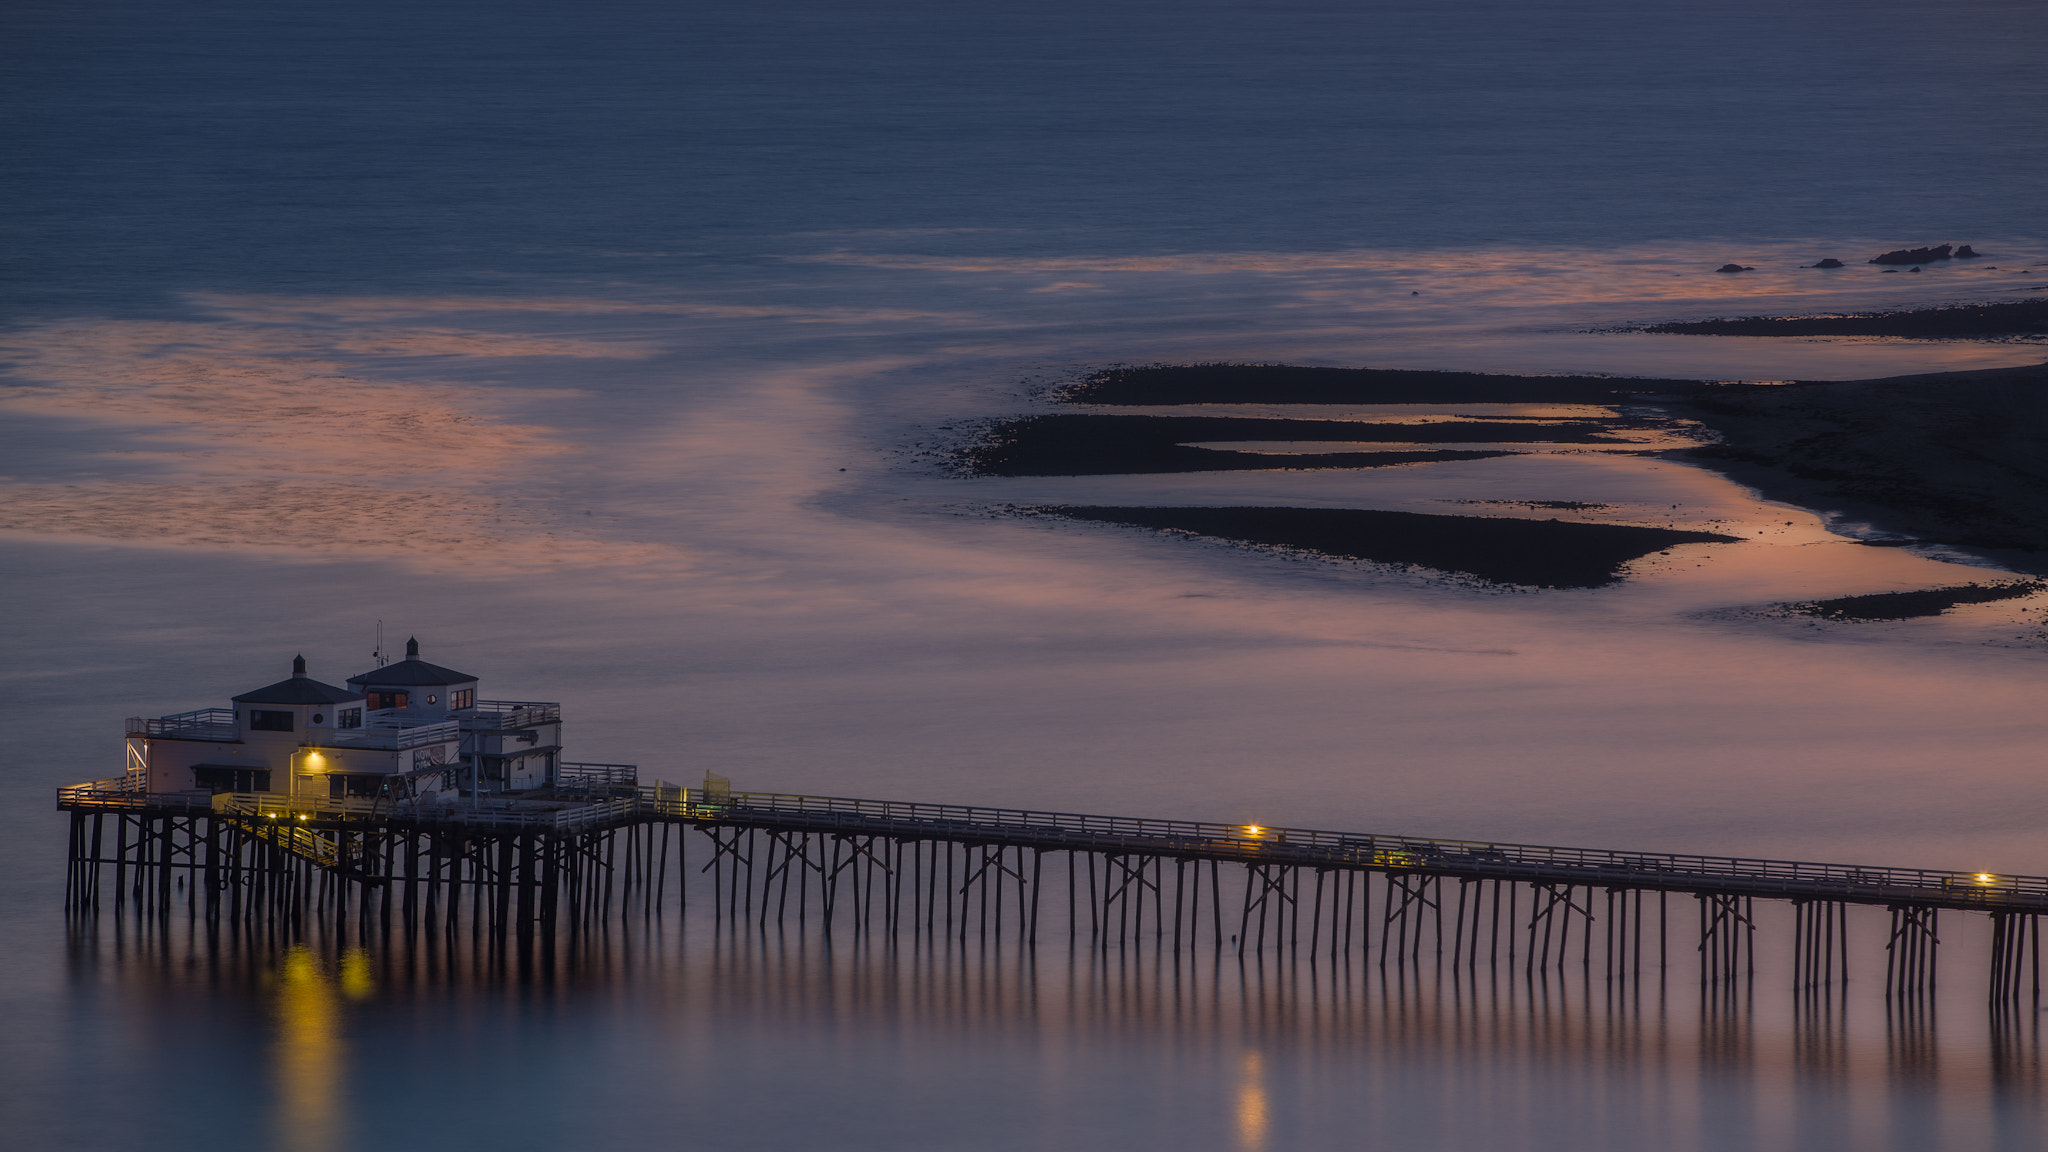 Photograph Malibu Pier by Bobby Gibbons on 500px